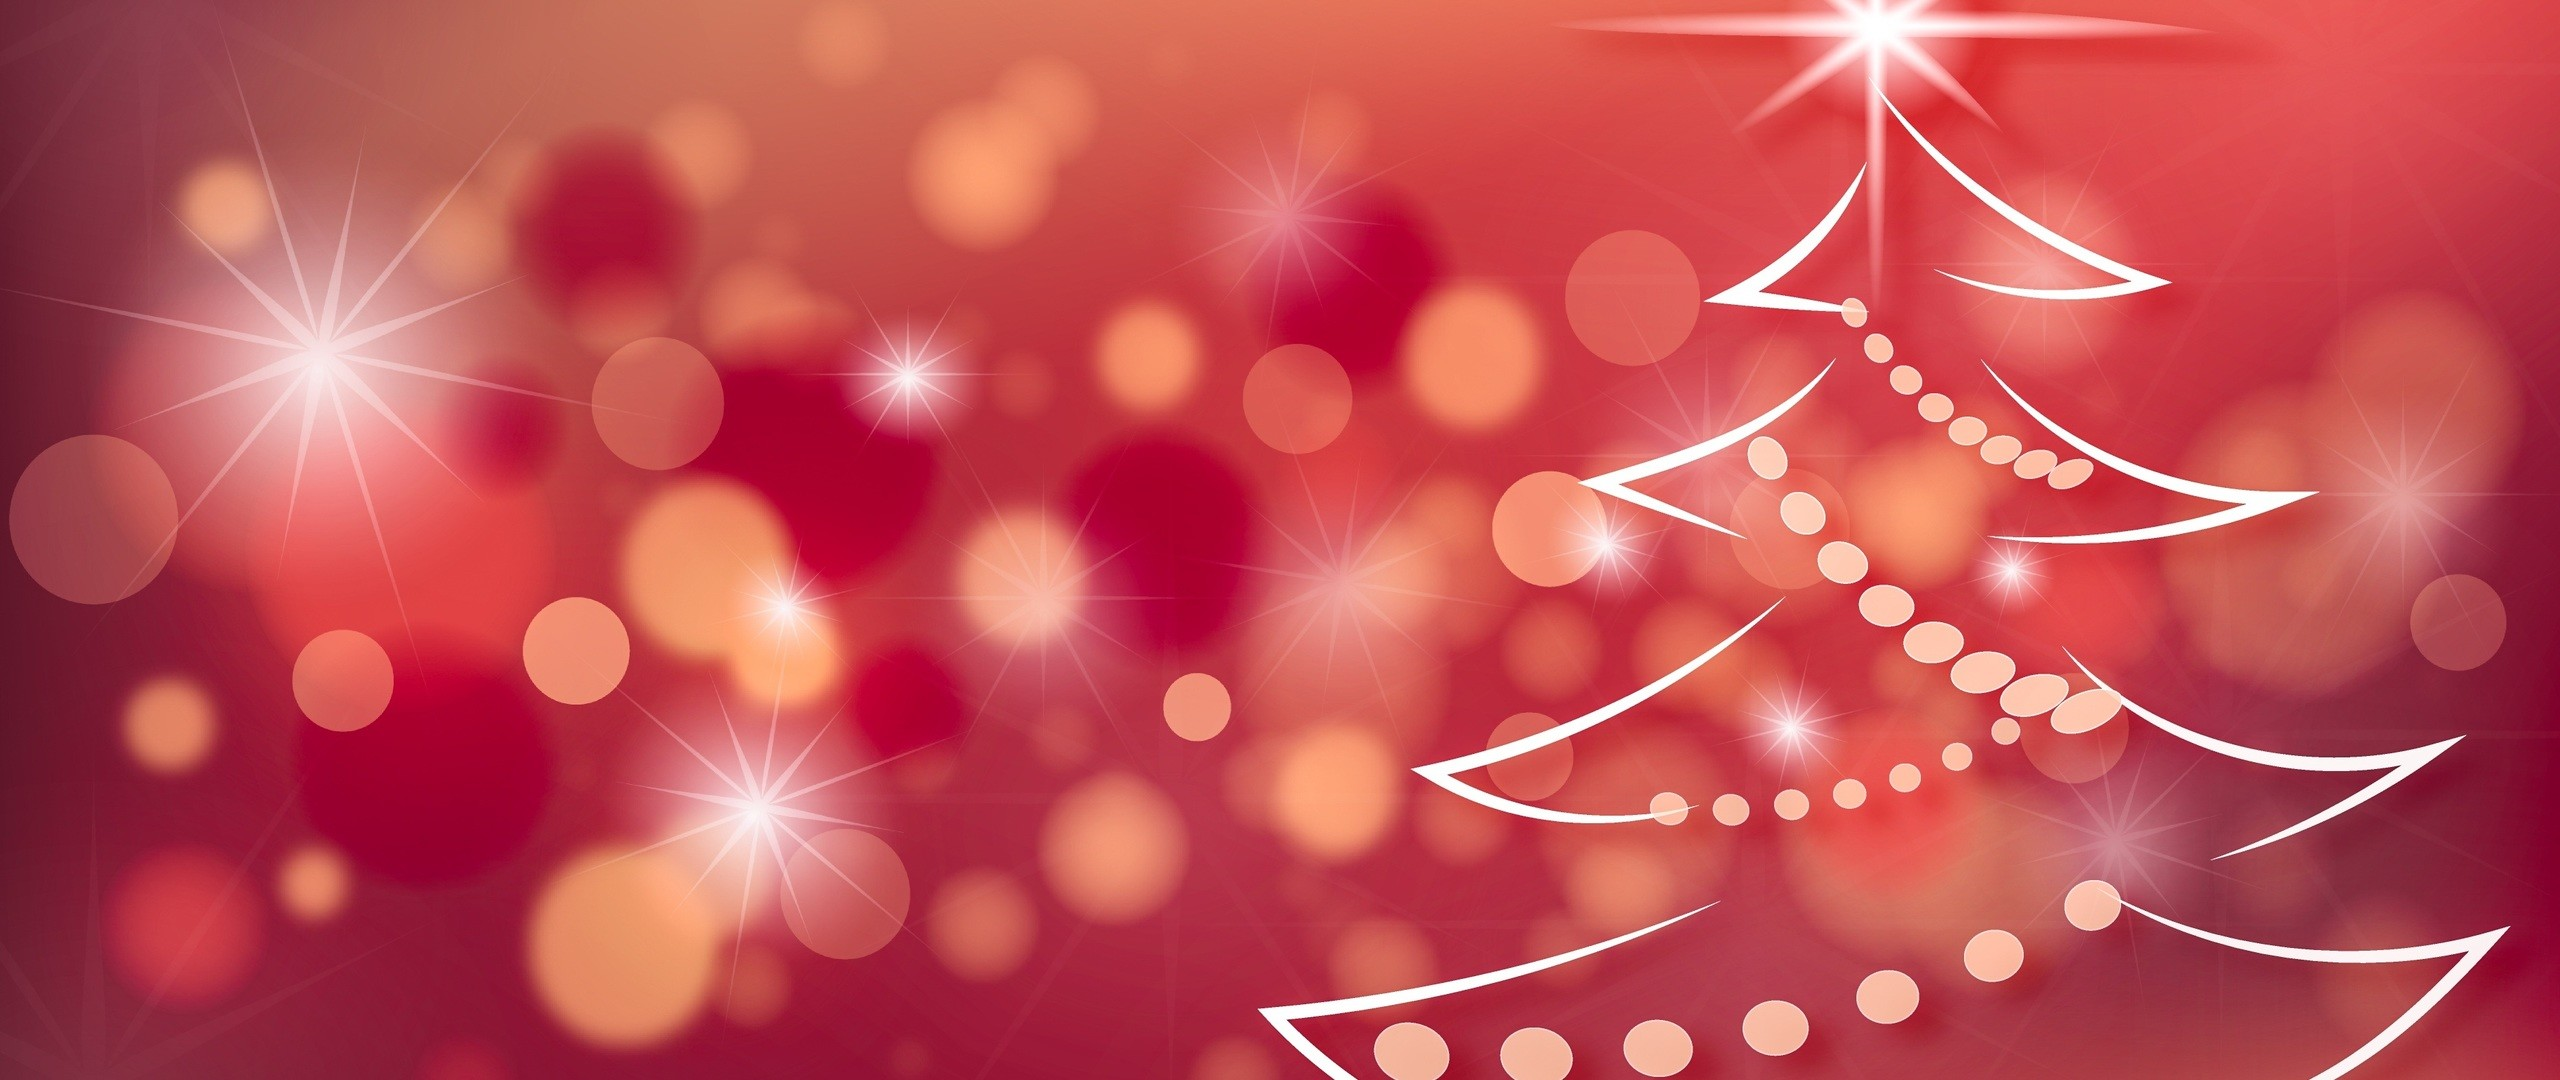 Christmas Wallpaper Backgrounds 72 pictures